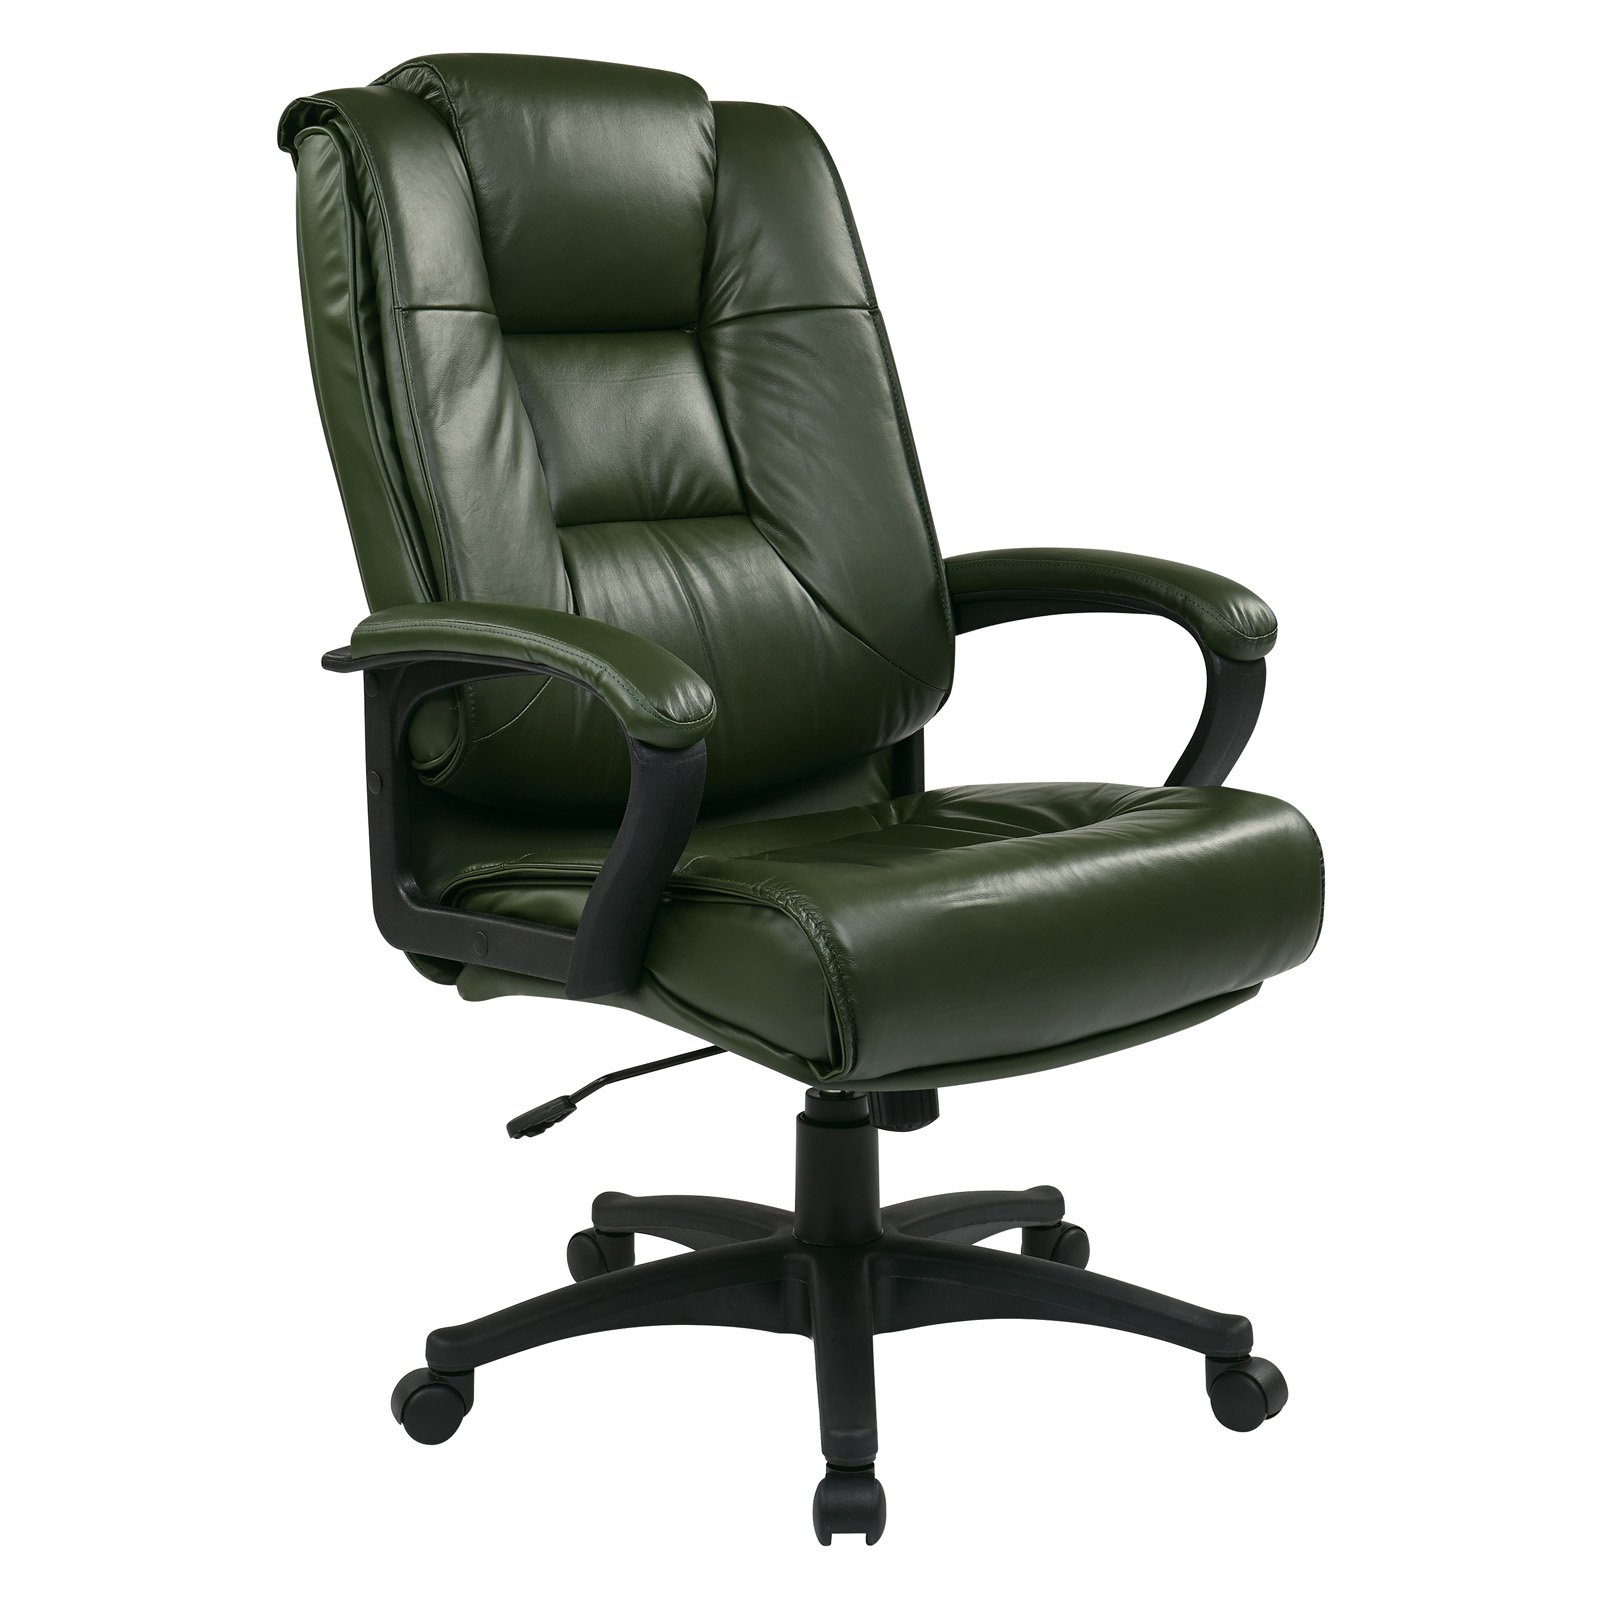 Executive High-Back Glove Soft Leather Chair with Padded Loop Arms